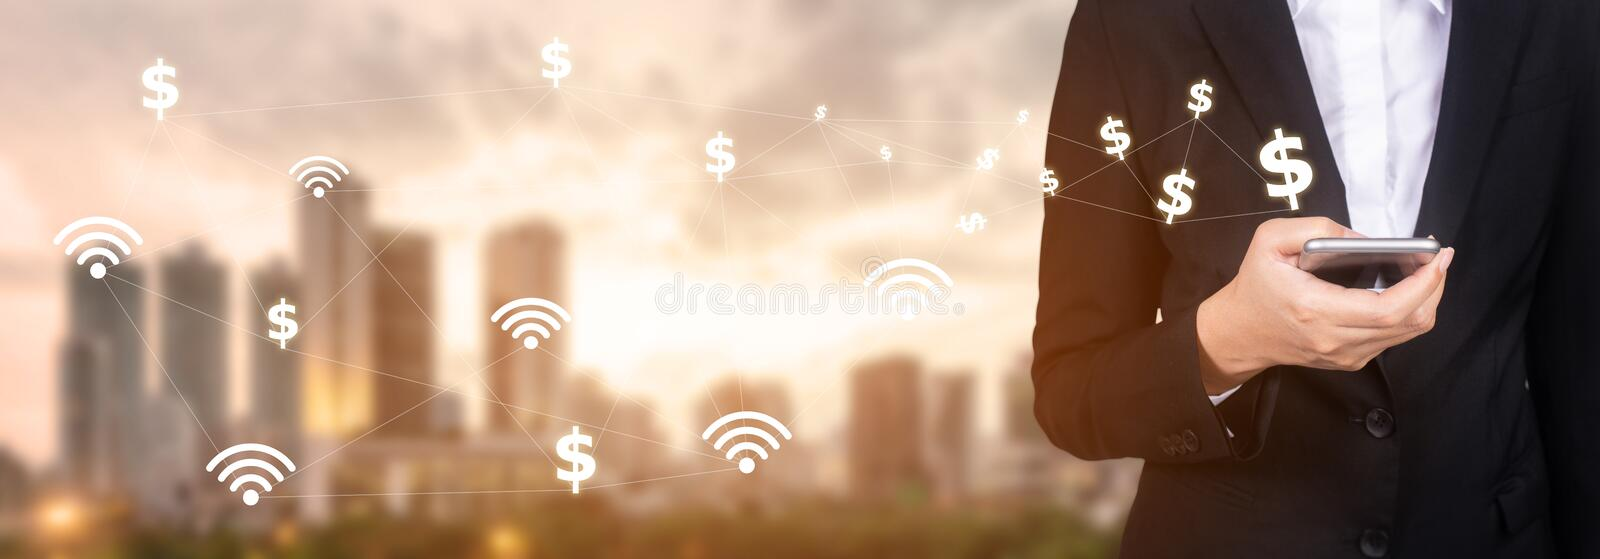 Mobile banking network. business people using mobile phone with stock photos